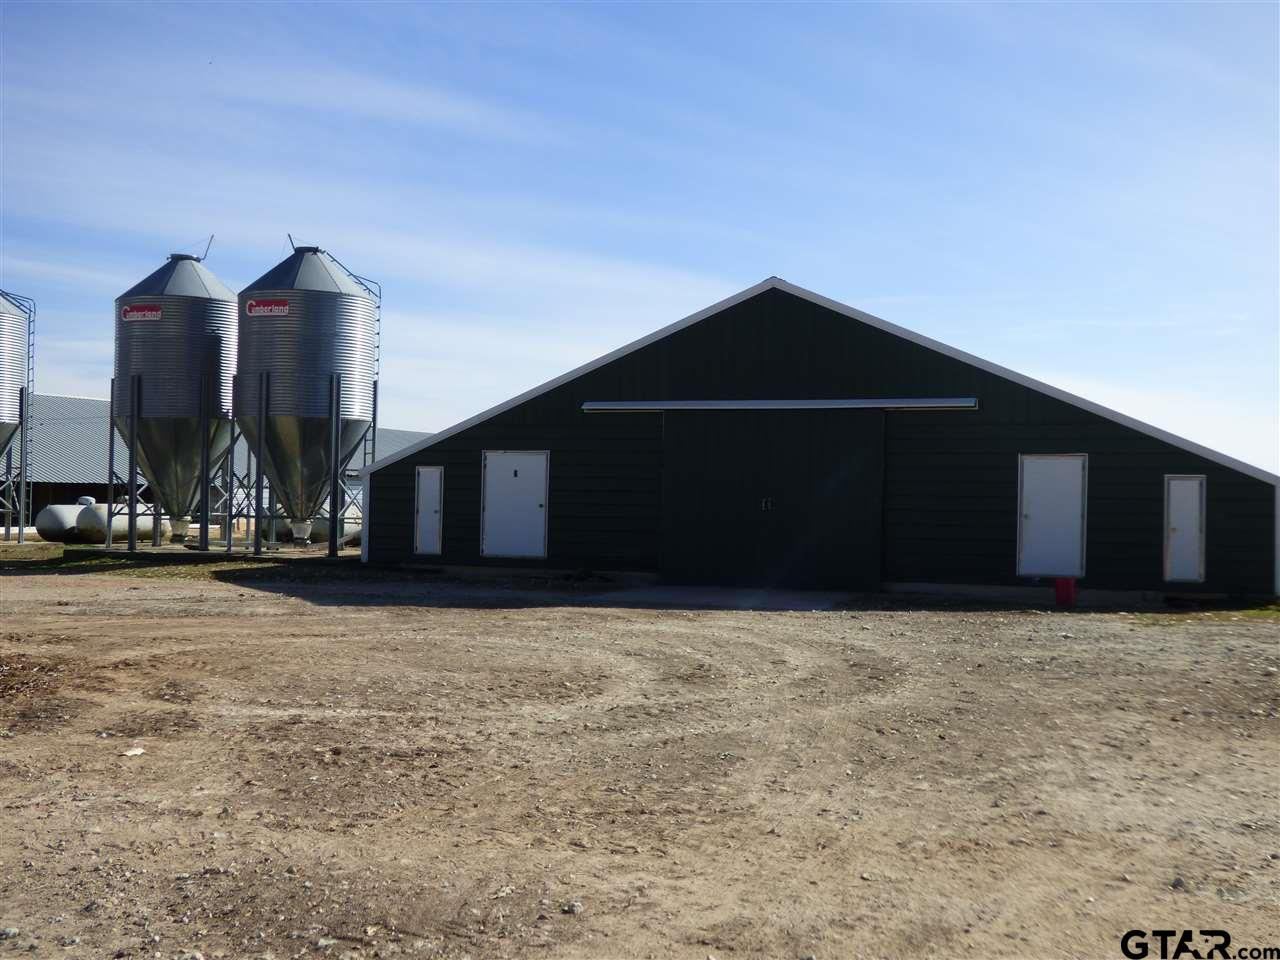 2 INCOME PRODUCING POULTRY FARMS.  BOTH OF THE FARMS AVE 6/500 FT POULTRY HOUSES .  THIS FARM, BUILT IN 2004, has 25 acres.  THE FARM    FEATURES THE 6/ 500 FT STEEL HOUSES AS WELL AS AN INSULATED SHOP AND INCINERATOR. THIS FARM IS WELL MAINTAINED.  THERE ARE 2/ 500+ FT WELLS.  CUMBERLAND FEEDERS, PLASSON WATER, AND LB WHITE BROODERS.  BUYERS MUST BE APPROVED AS A GROWER THROUGH PILGRIMS AND BE PREAPPROVED FOR FINANCING.  SELLER IS SELLING BOTH OF HIS FARMS FOR THE SELLING PRICE OF $2,750,000.  LOCATED IN CASS COUNTY.